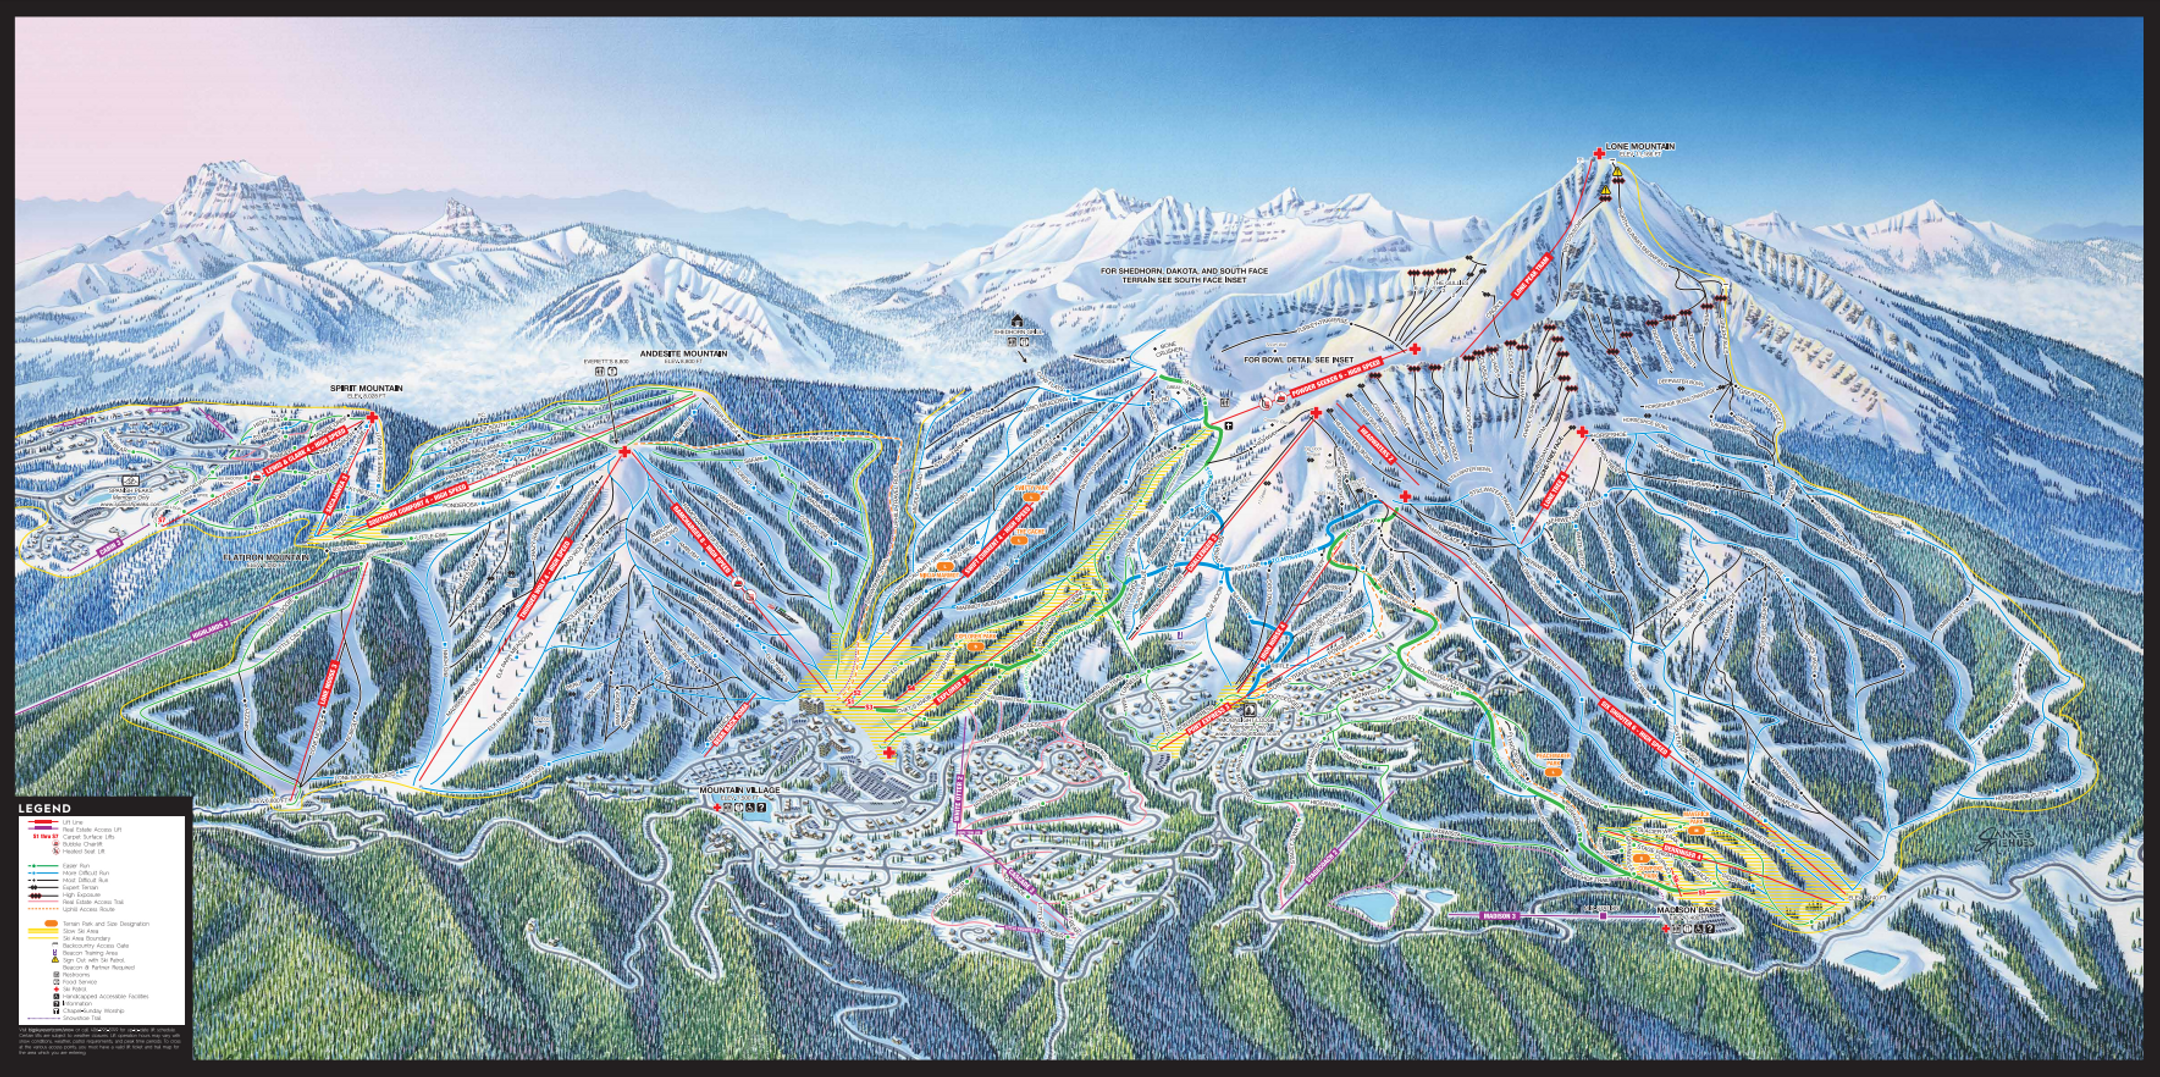 Big Sky ski-resort-trail-map United States ripatrip